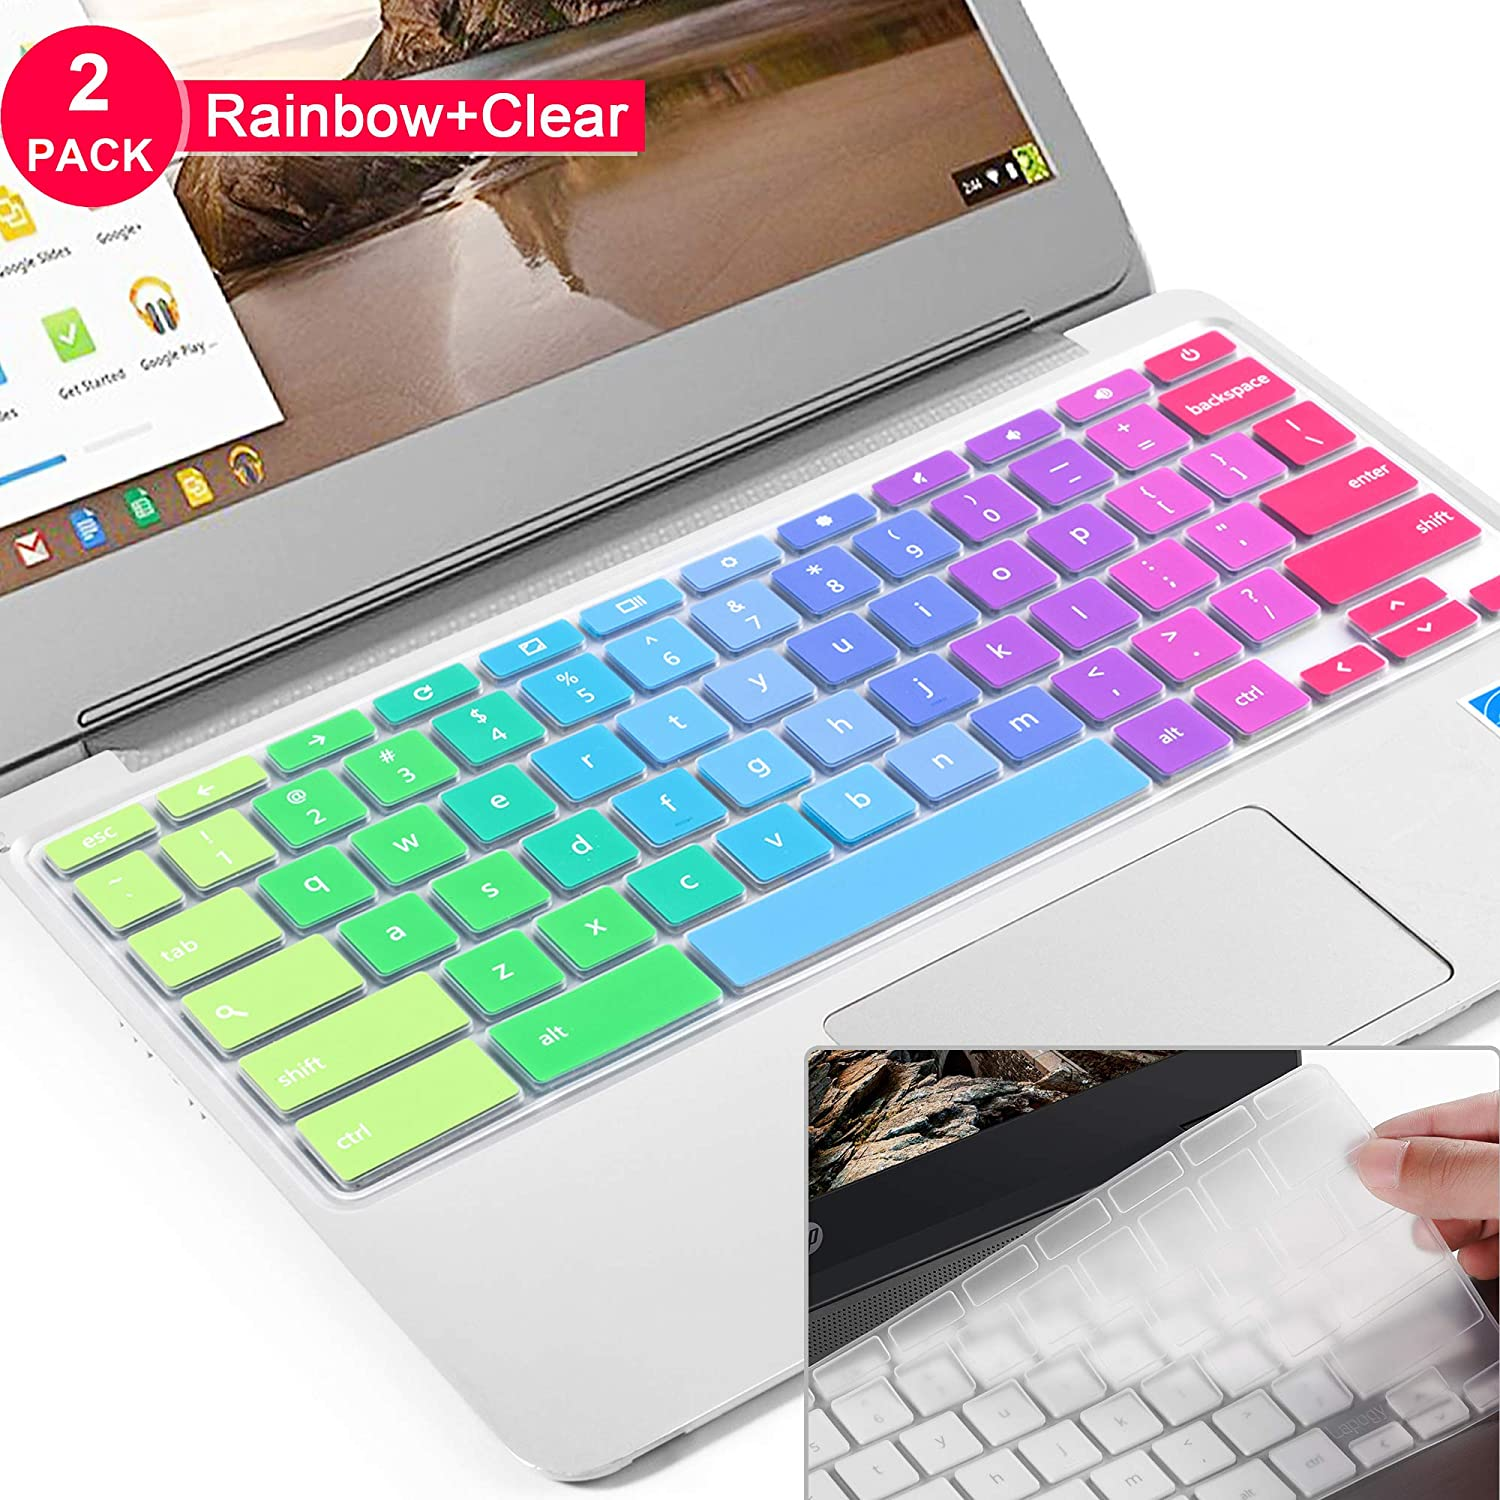 [2pcs] Lapogy Keyboard Cover for Dell chromebook 11.6 inch,Dell Chromebook 3100/3120/3180/3189/3181/5190,Dell chromebook Keyboard Cover 13.3,DELL chromebook 3380(Rainbow+Clear)